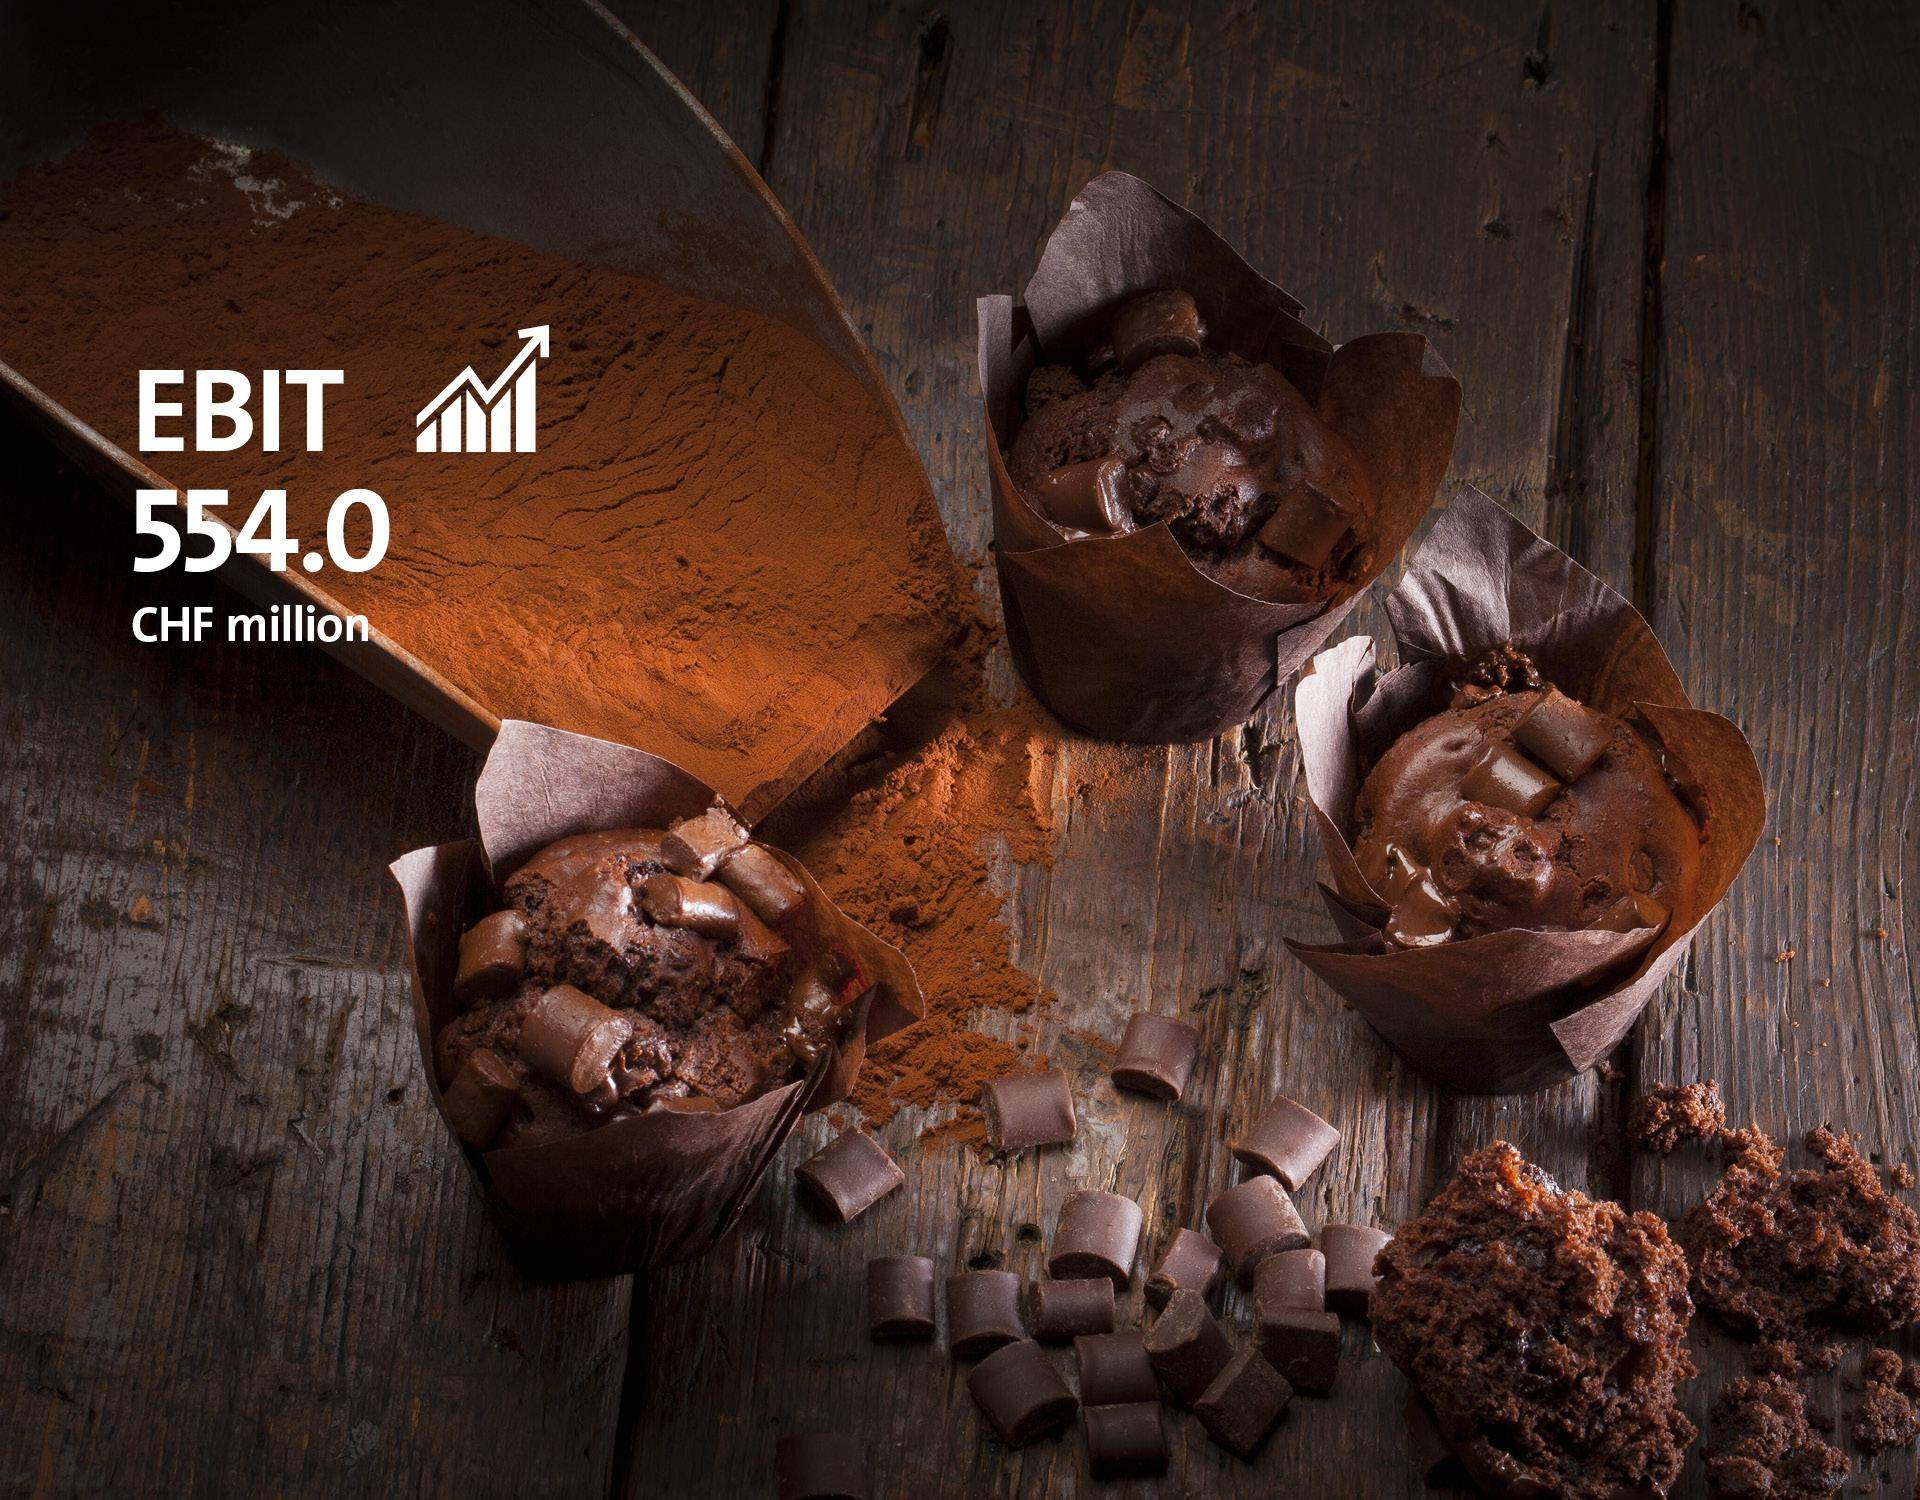 Image Slider EBIT Fiscal Year 2017/18 Barry Callebaut Group